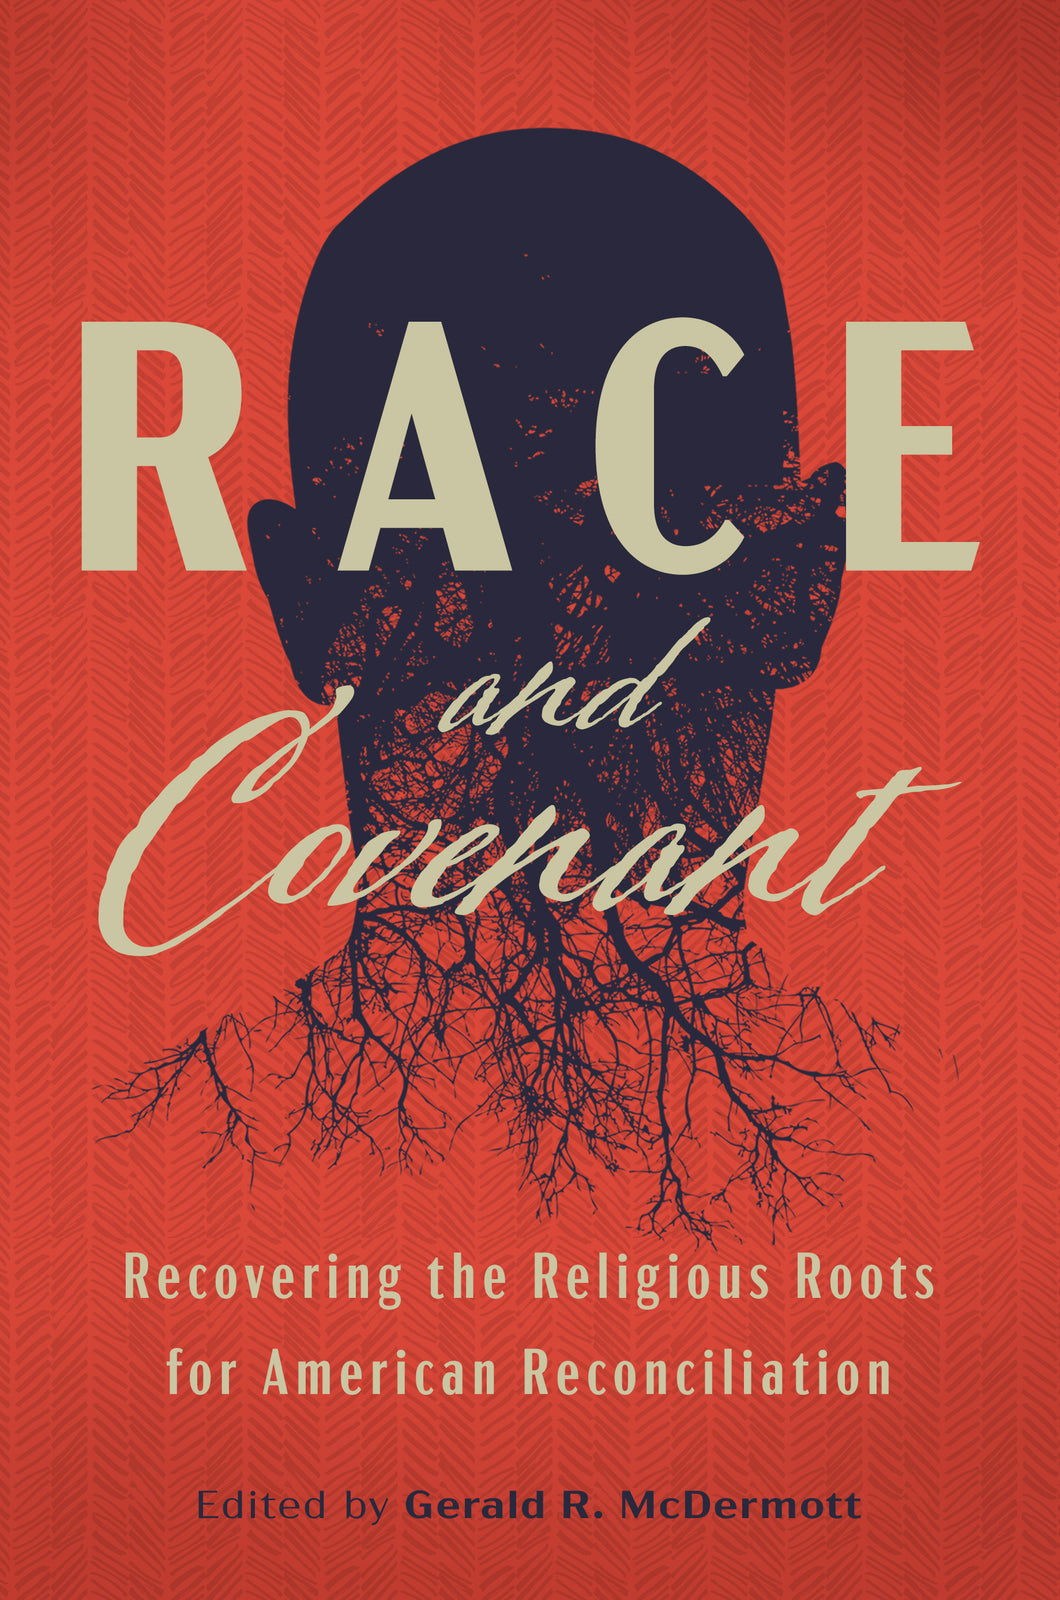 Race and Covenant